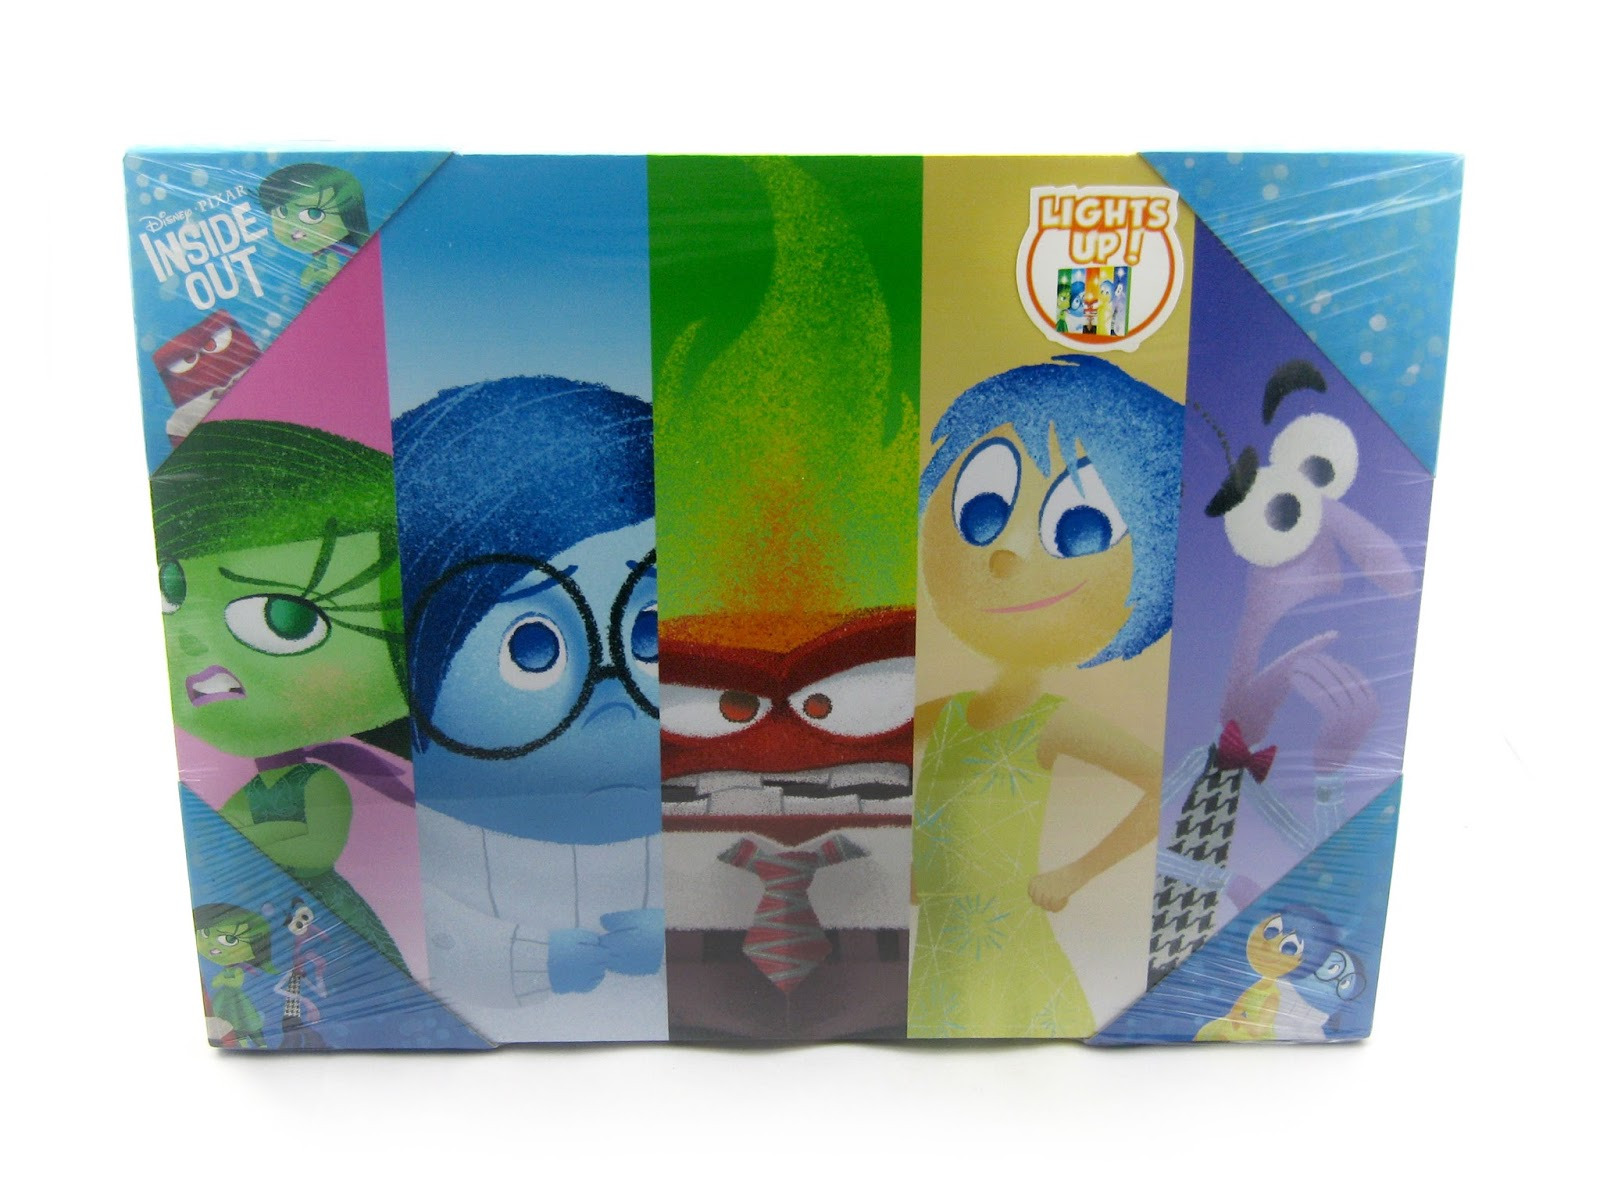 Sold Exclusively At Walmart And Walmart.com, Here We Have The New Inside  Out Inspired Light Up LED Wrapped Canvas Wall Art! This Is A Very Cool And  Colorful ...